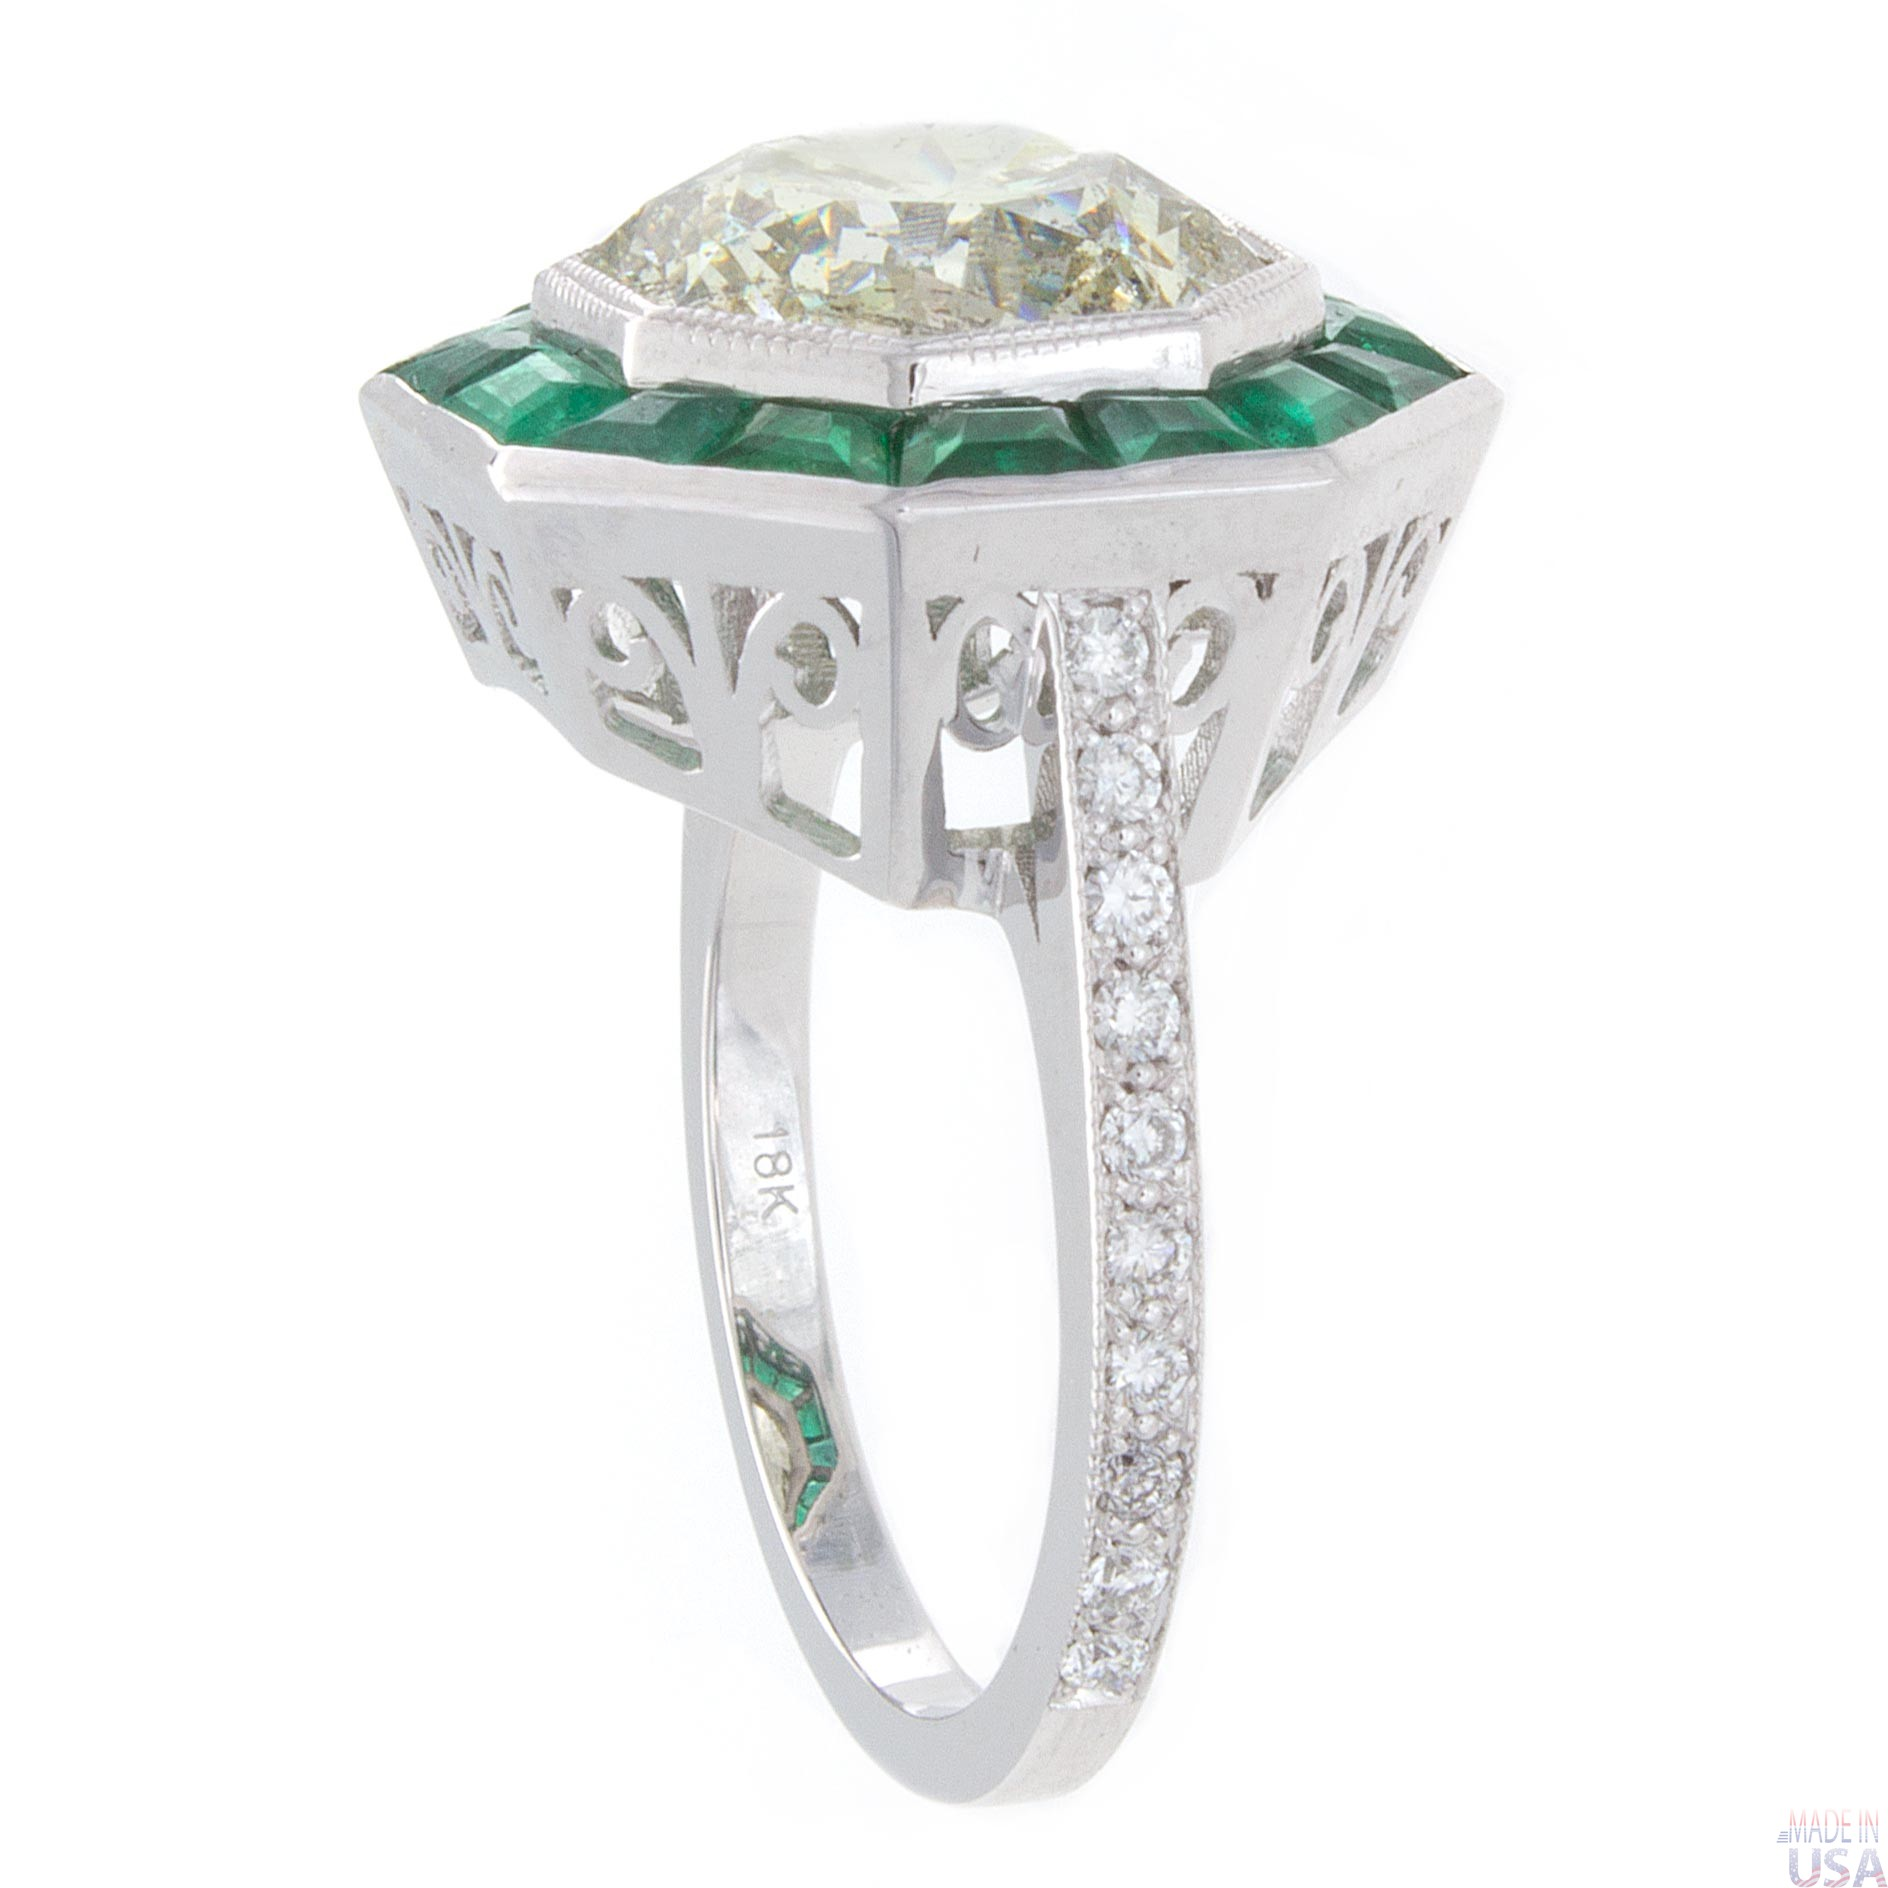 be perfect most ever diamond setting seen would how the unique is love halo i it octagon pin beautiful this cut have